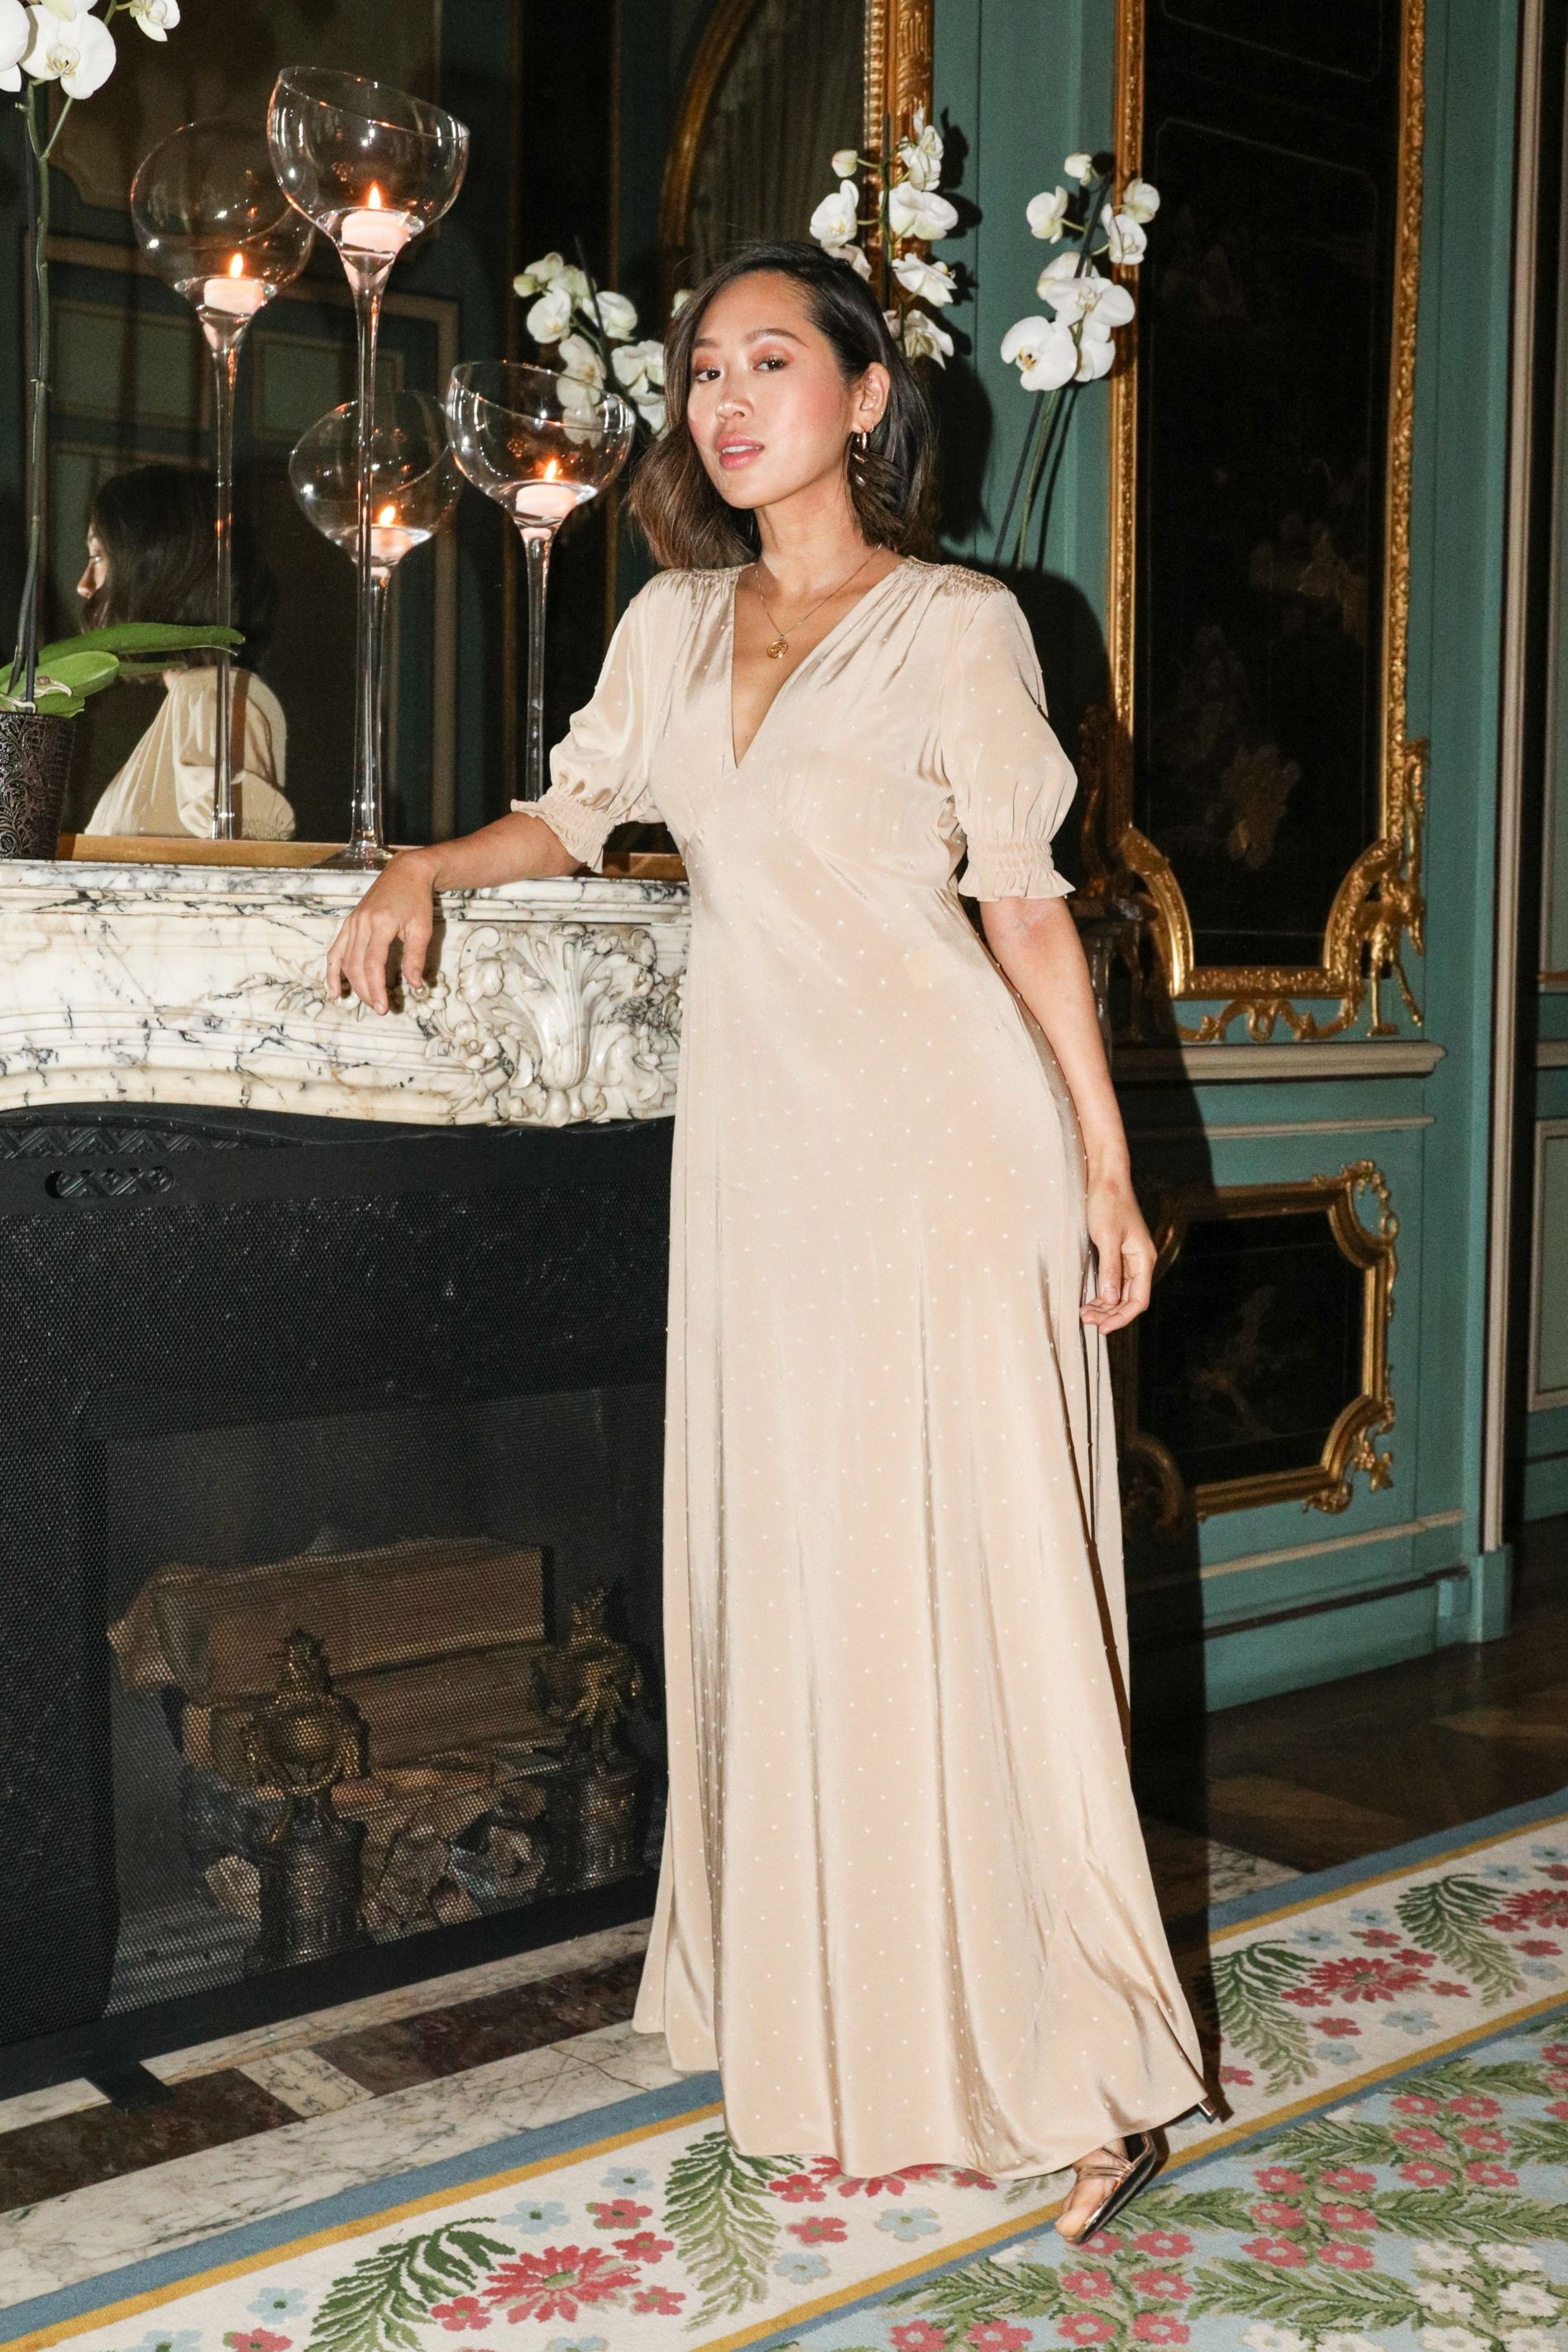 Aimee Song Aimee Song attends the Jamie D. McCourt and Diane von Furstenberg hosted cocktail reception in celebration of the forthcoming opening of the Statue of Liberty Museum on February 26 in Paris.